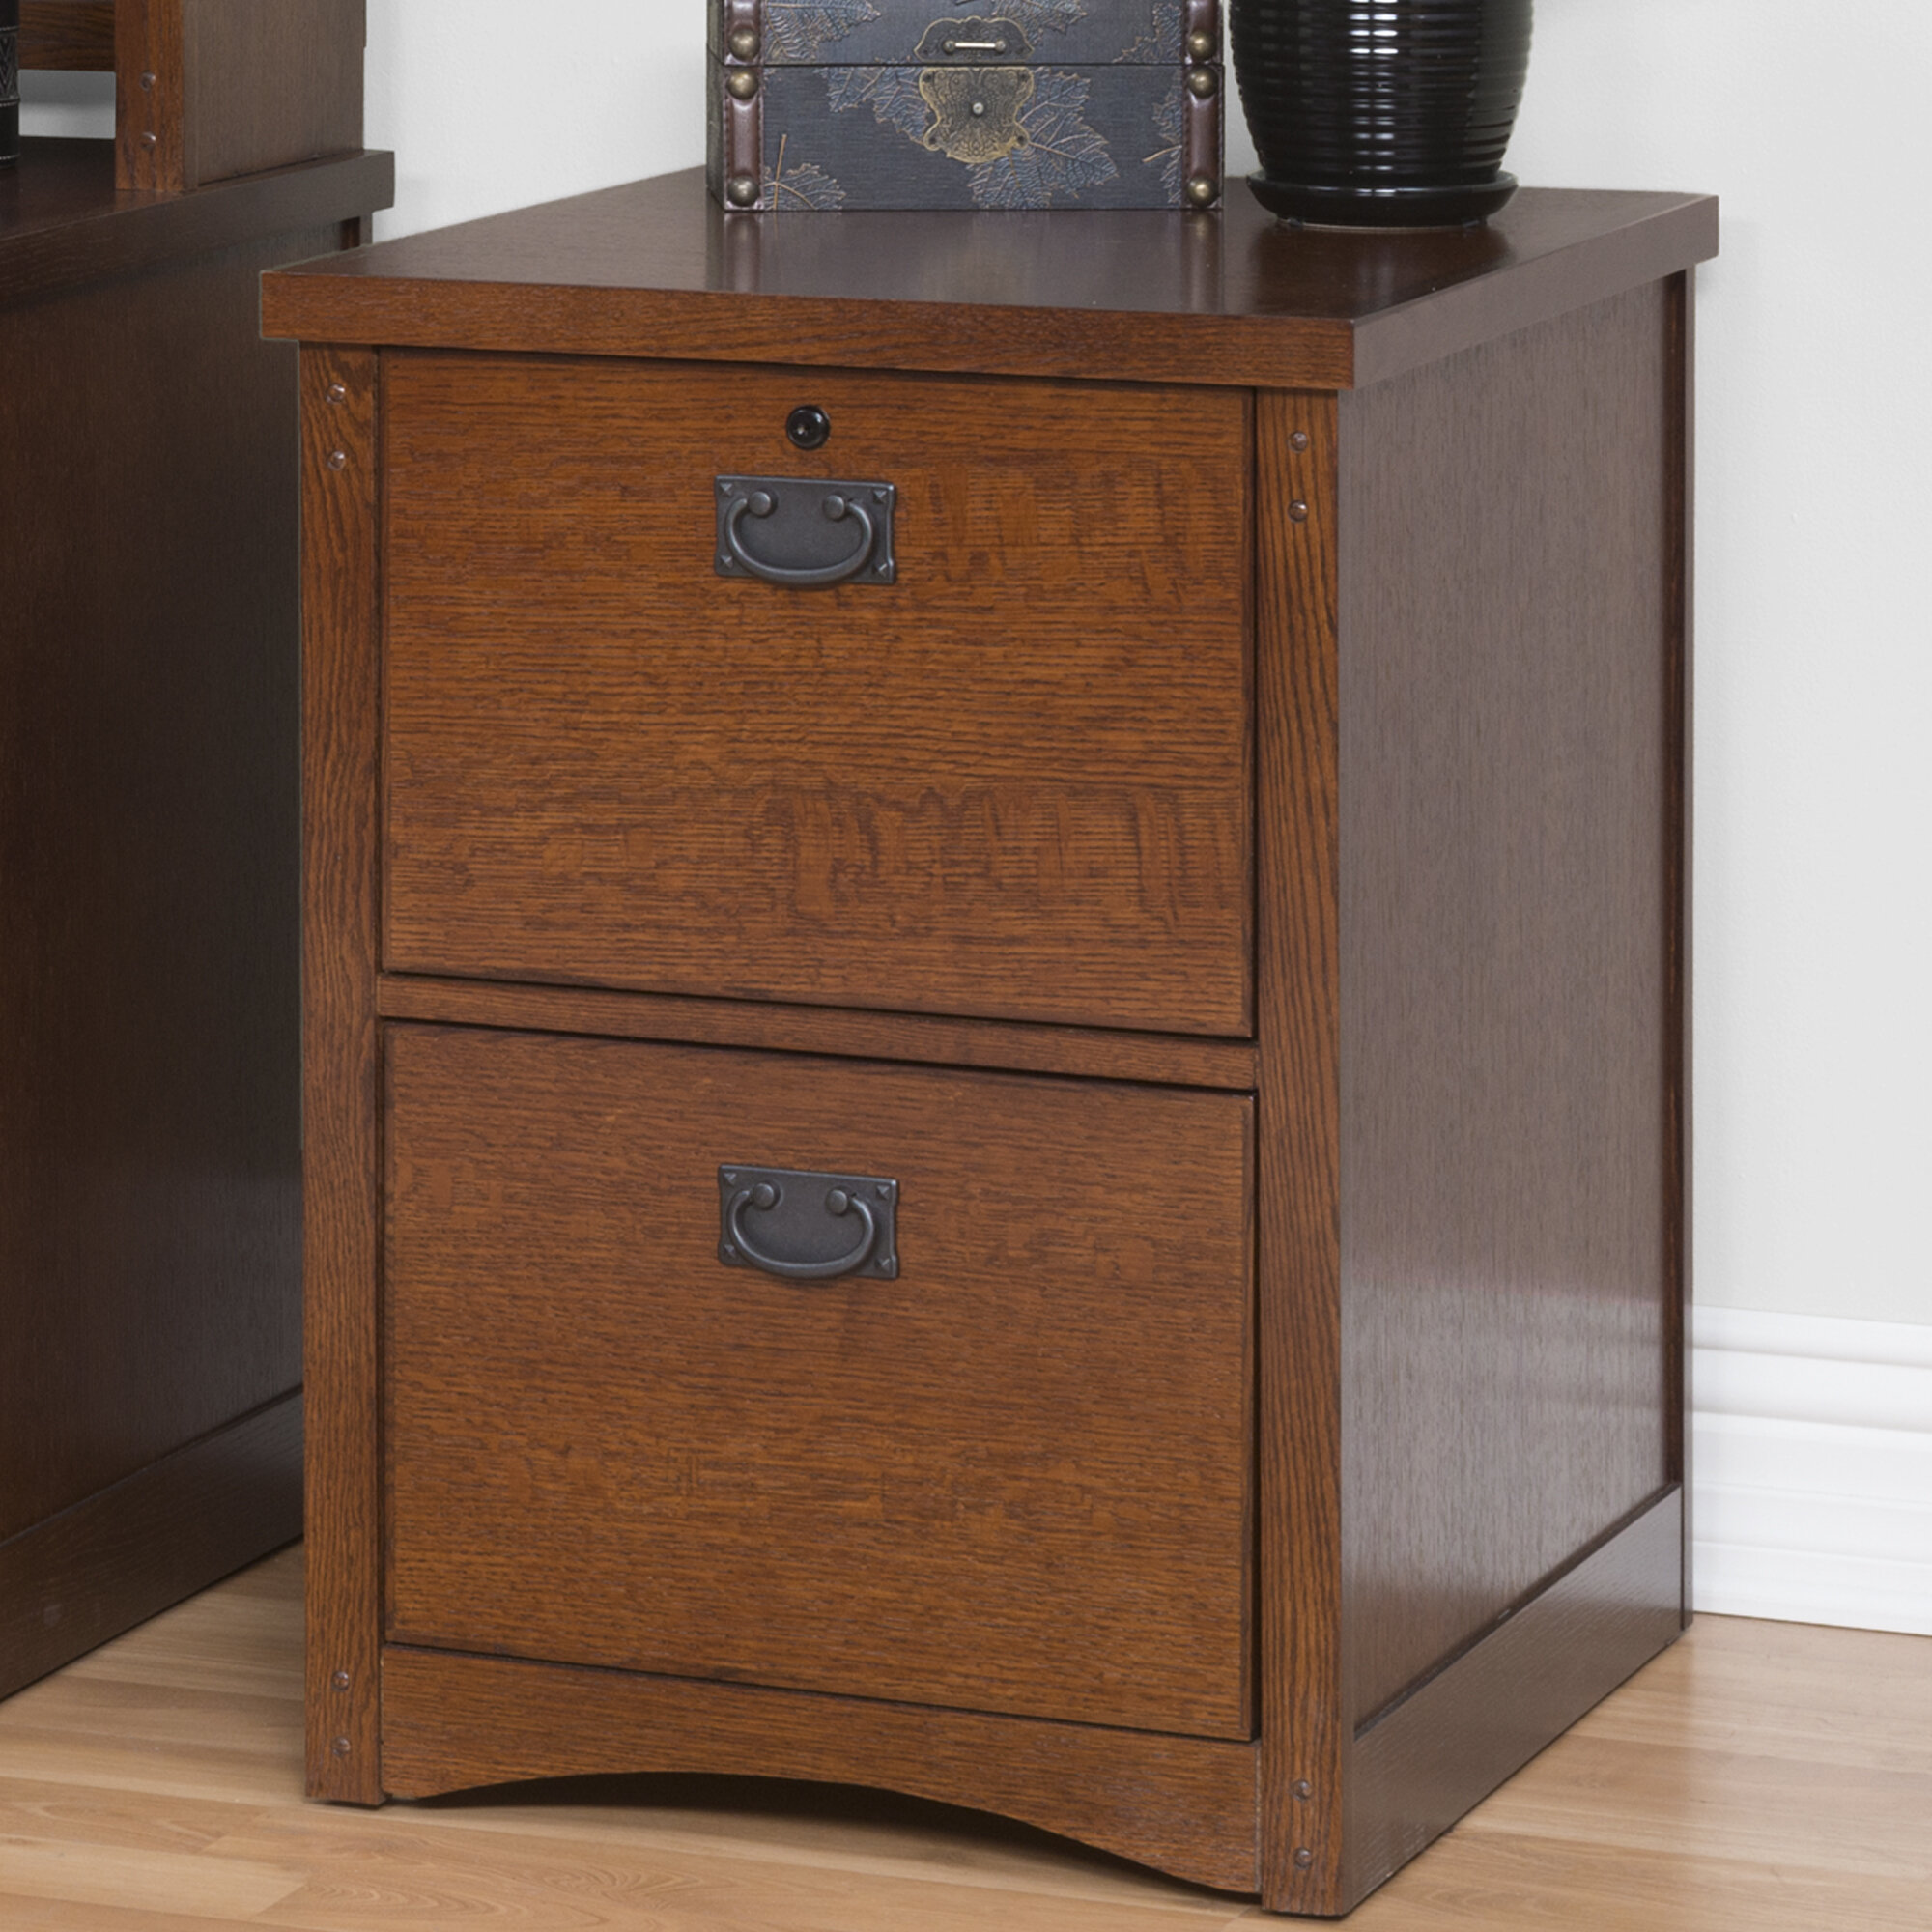 Benno 2 Drawer Vertical File Cabinet